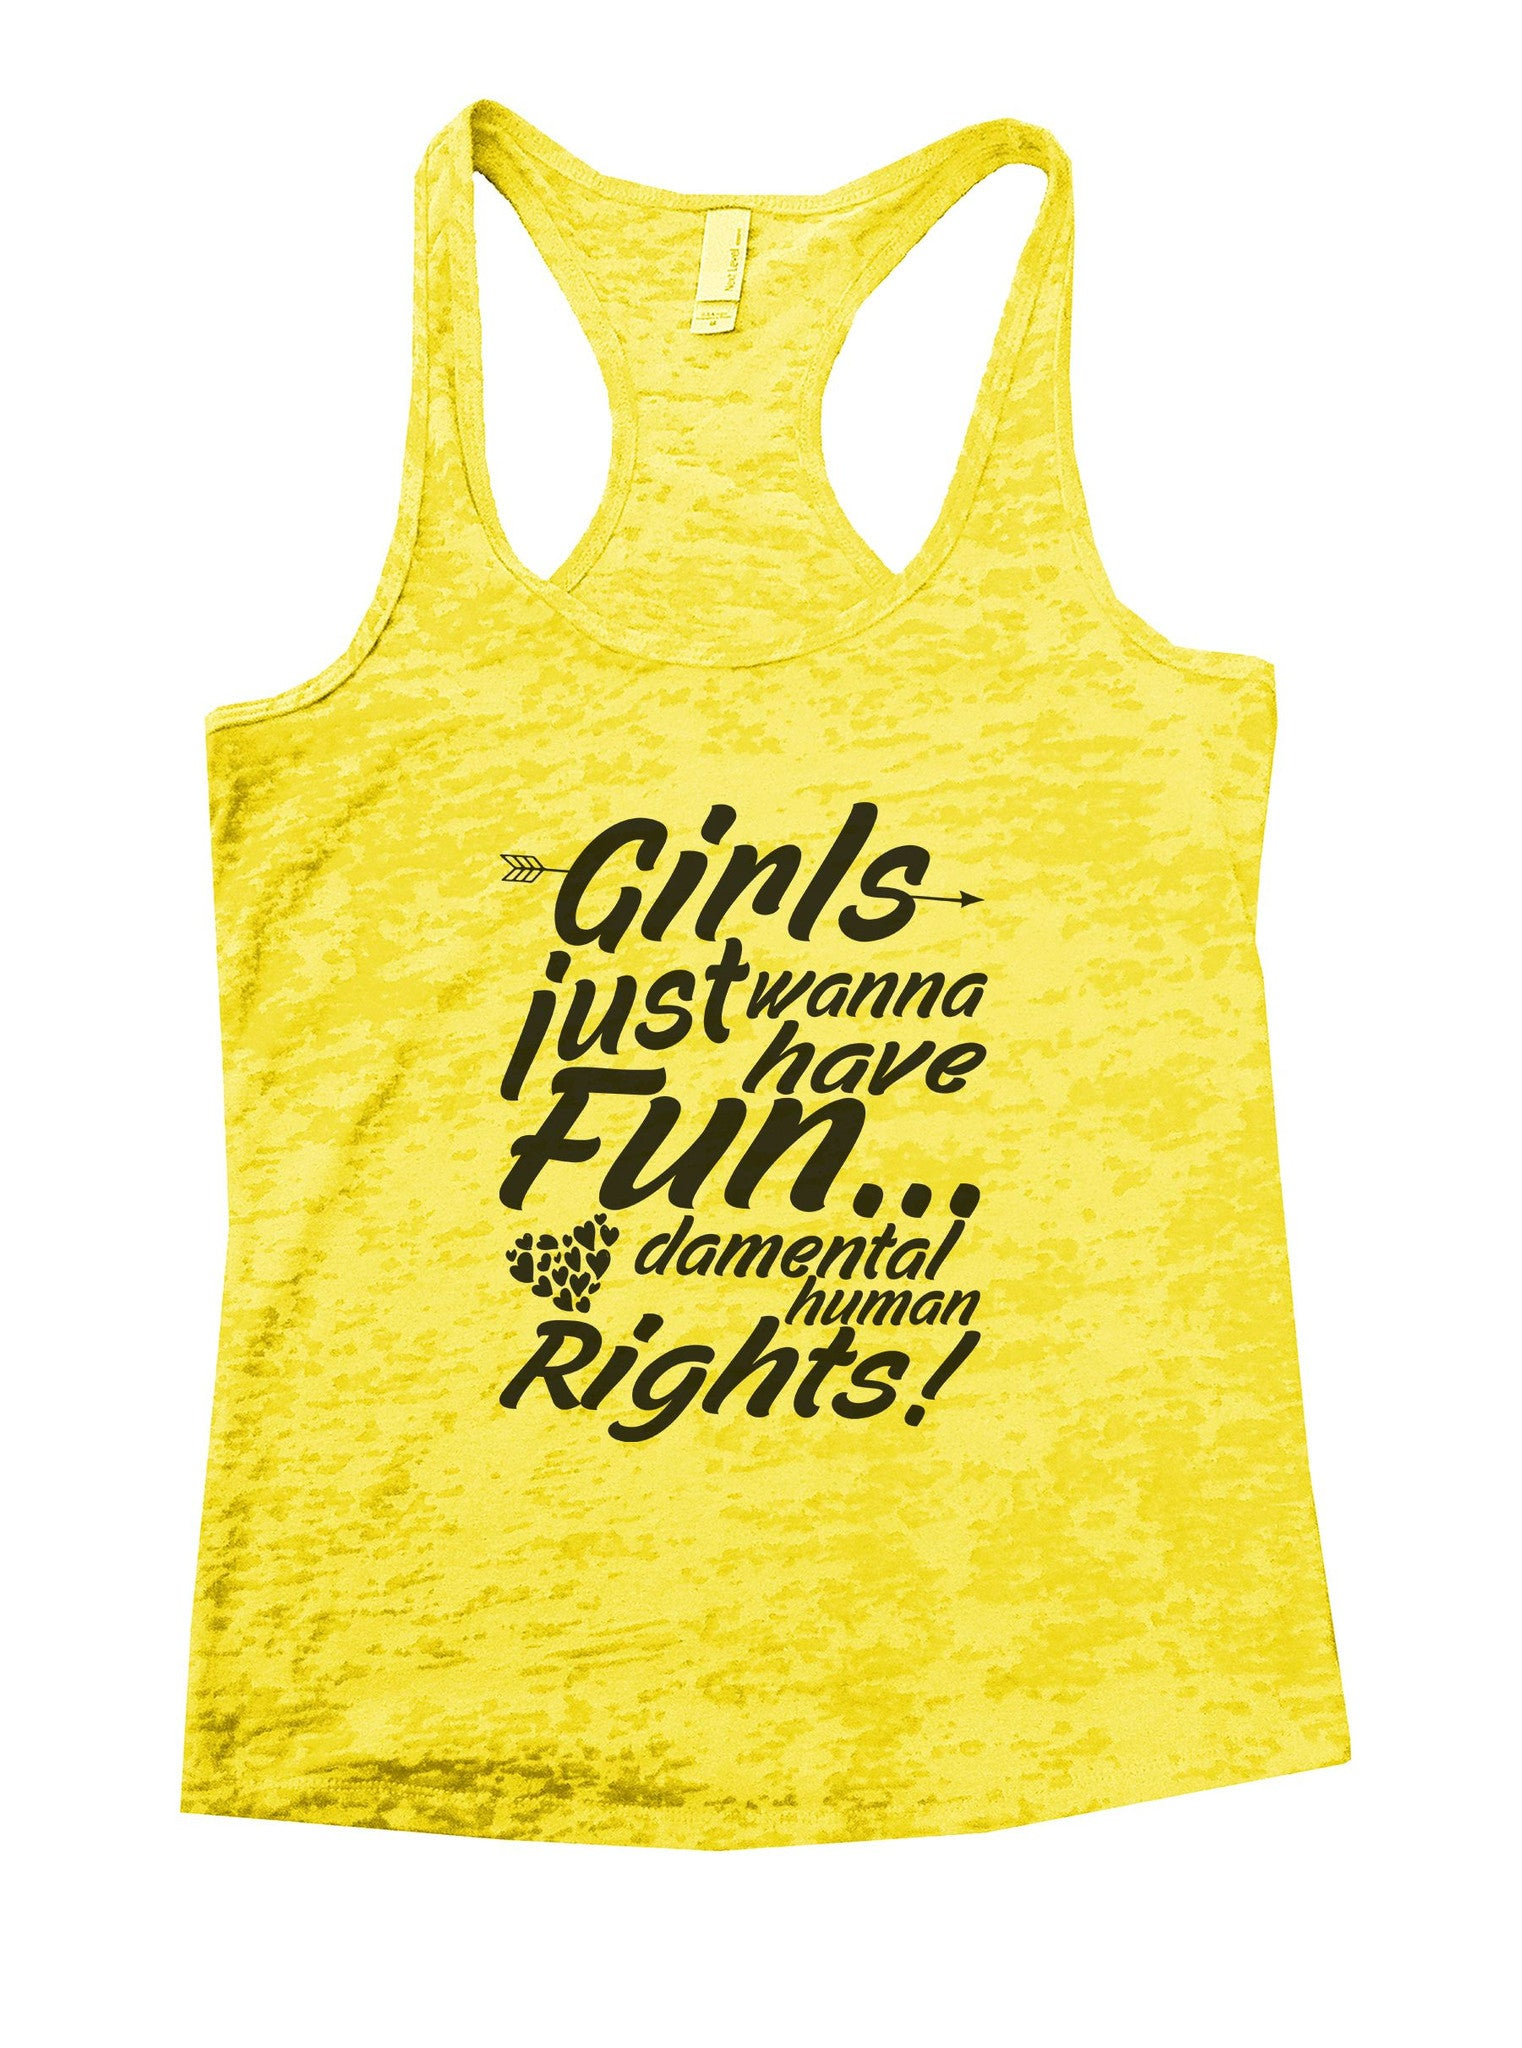 Girls Just Wanna Have Fun... Damental Human Rights Burnout Tank Top By BurnoutTankTops.com - 938 - Funny Shirts Tank Tops Burnouts and Triblends  - 7